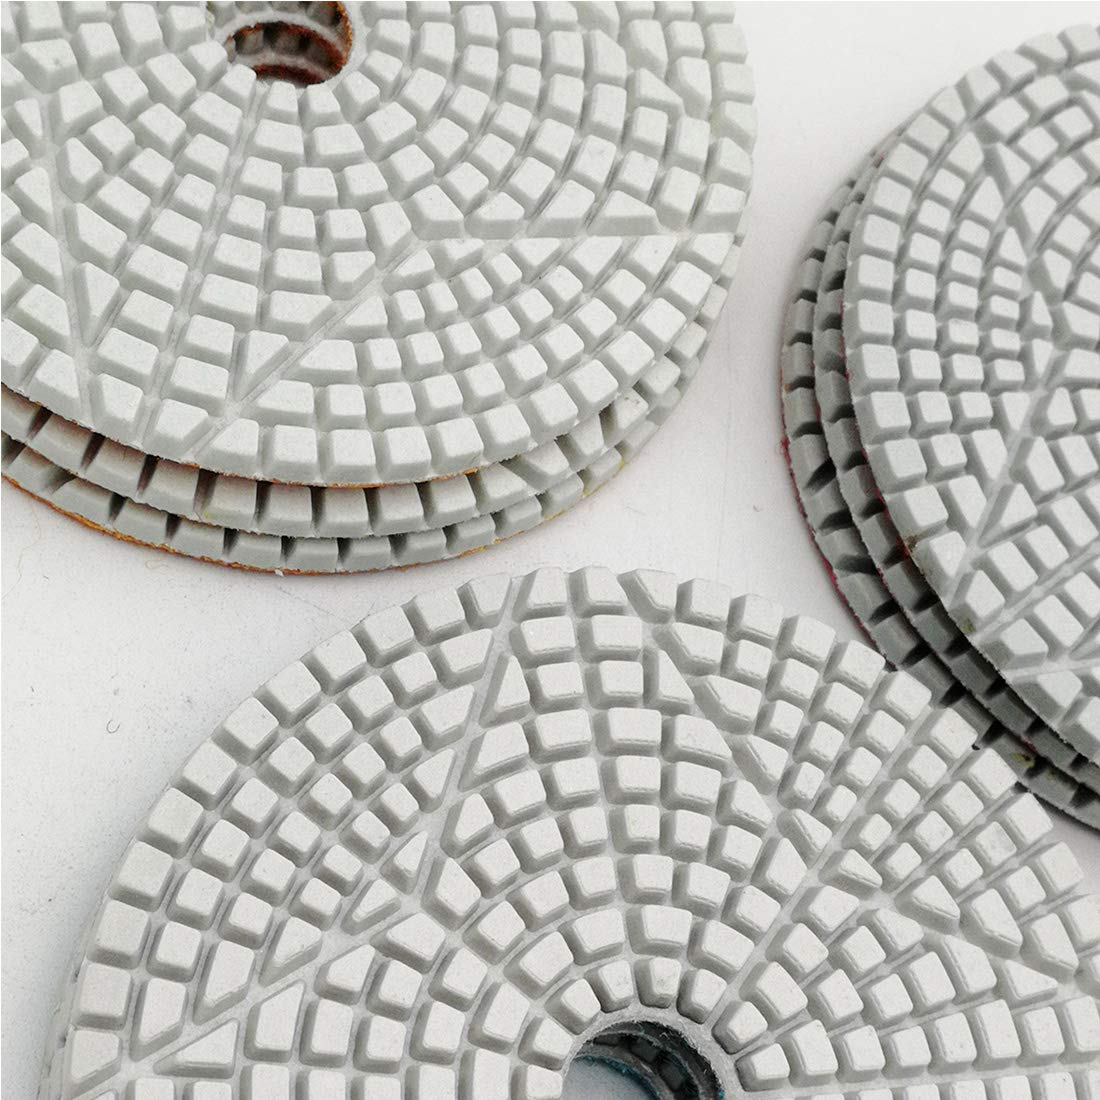 DT-DIATOOL 3-Steps Diamond Polishing Pads 4 Inch for Stone Marble